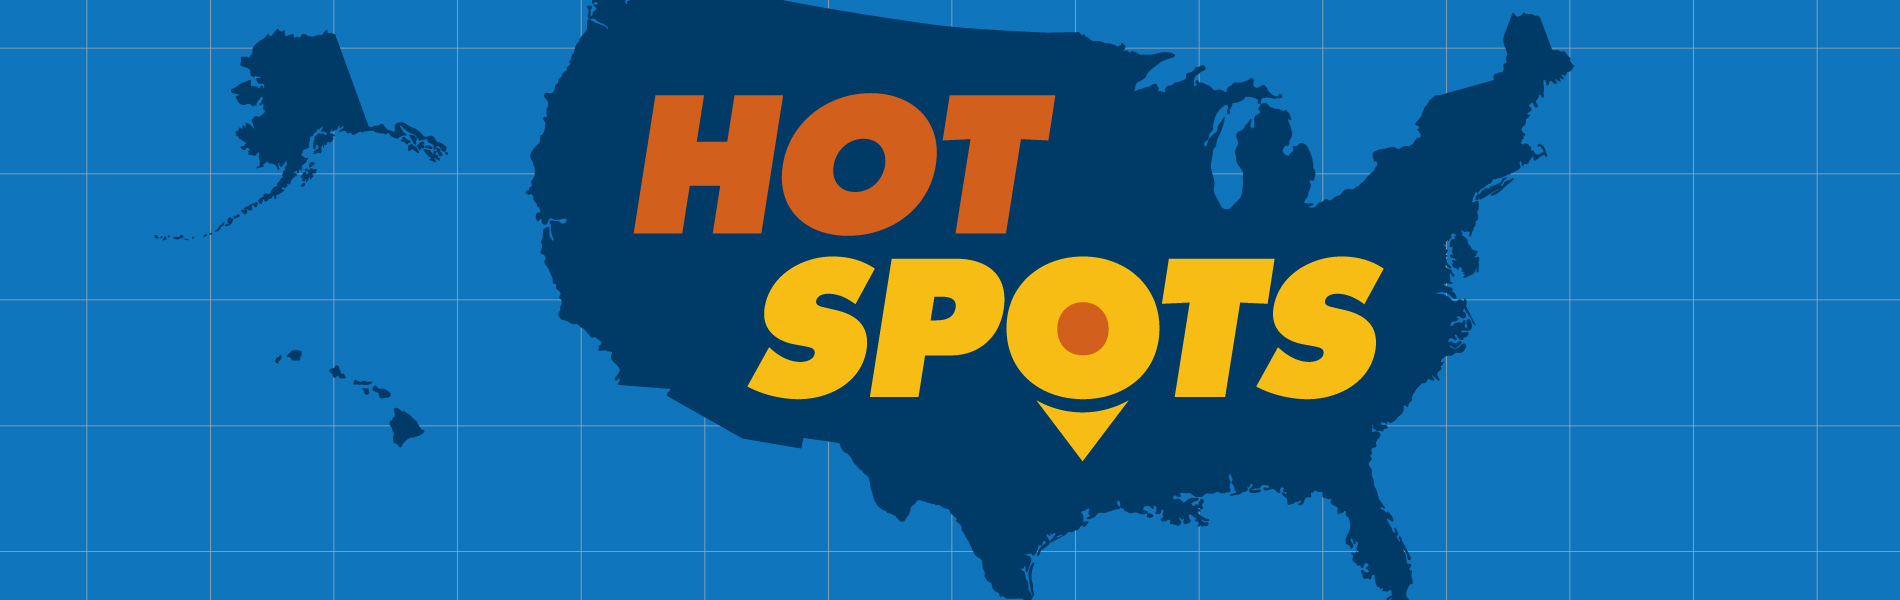 Hot Spots caption over a map of North America